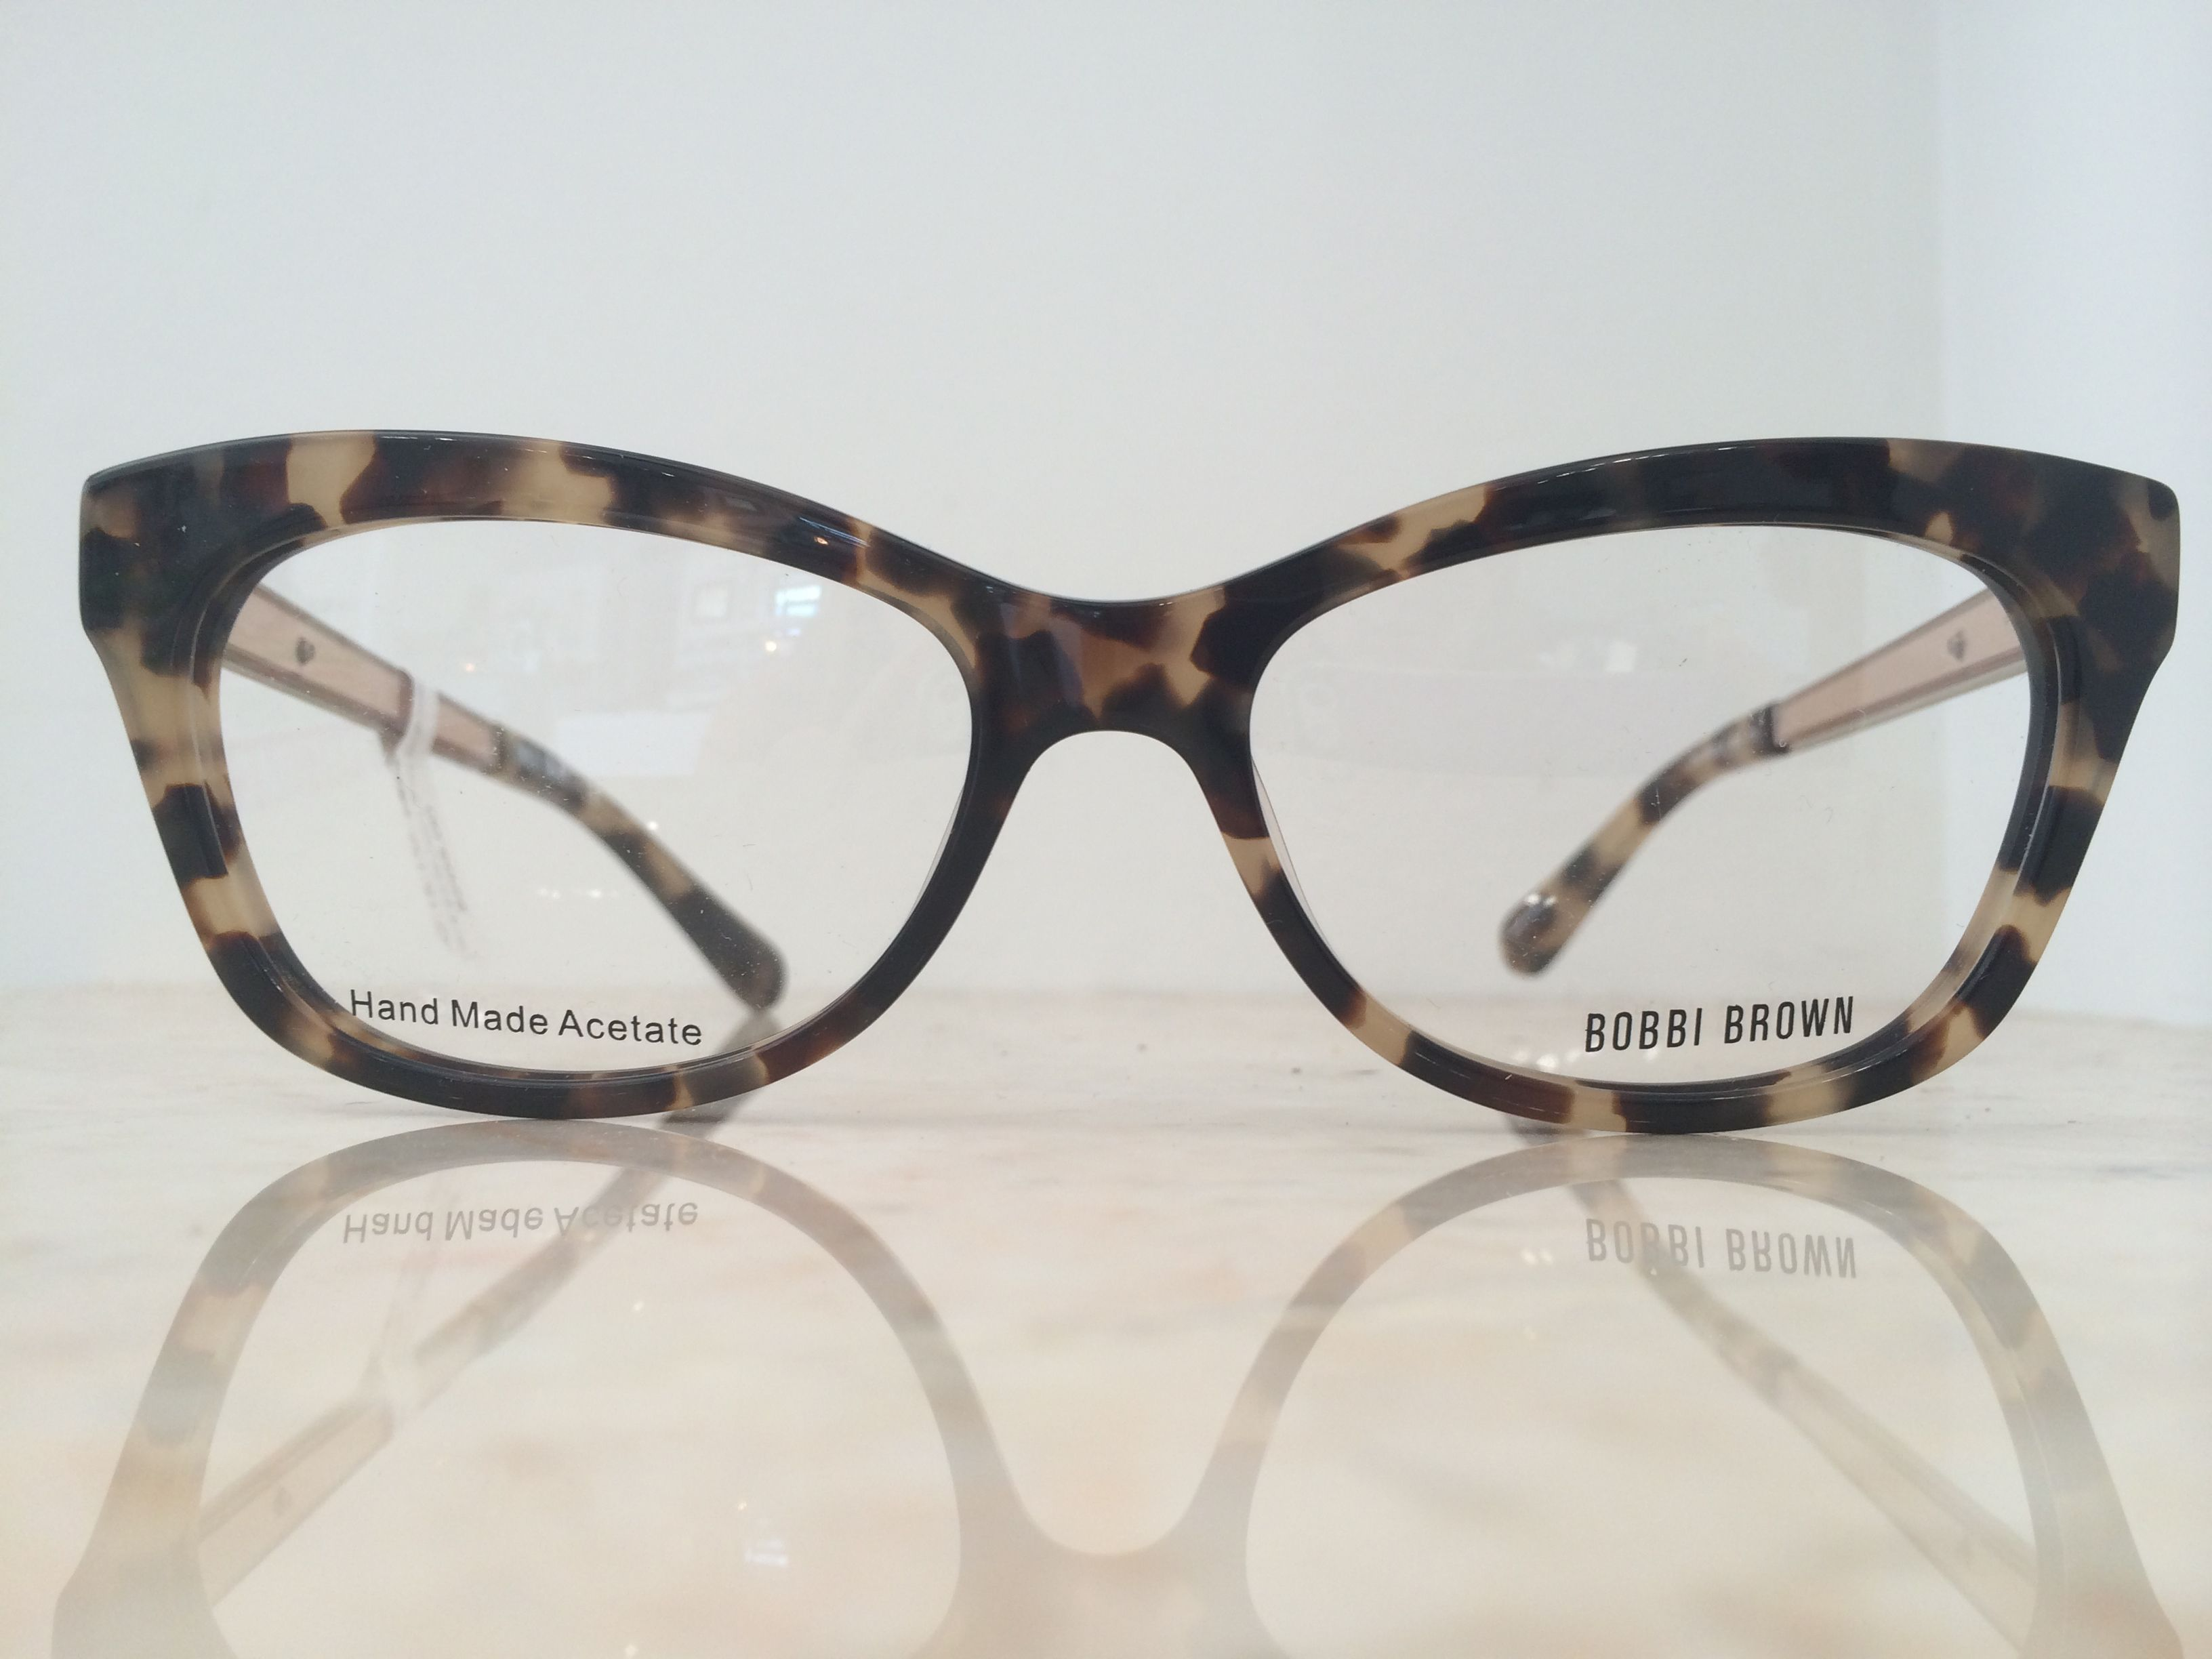 4a94be766d The Isabella Bobbi Brown Brown Glasses